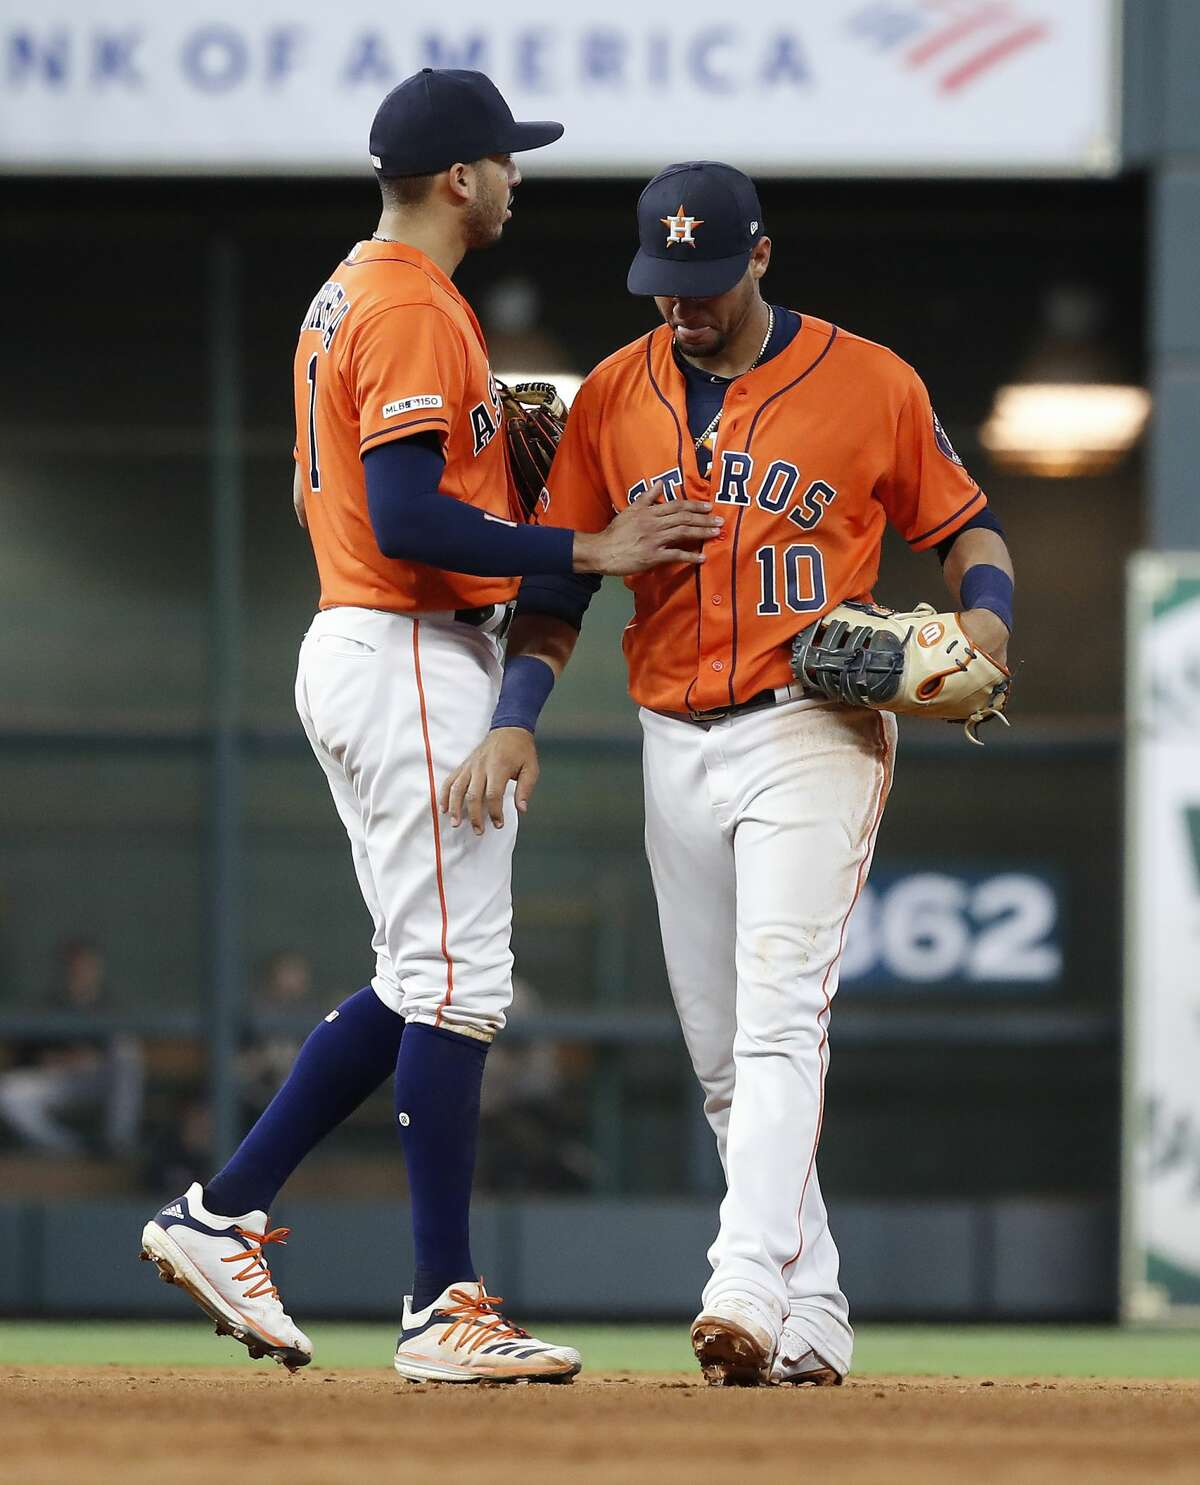 Houston Astros shortstop Carlos Correa (1) reasures Yuli Gurriel (10) after he tried to field a sharply hit line drive by Cleveland Indians Carlos Gonzalez during the eighth inning of an MLB baseball game at Minute Maid Park, in Houston, Friday, April 26, 2019.